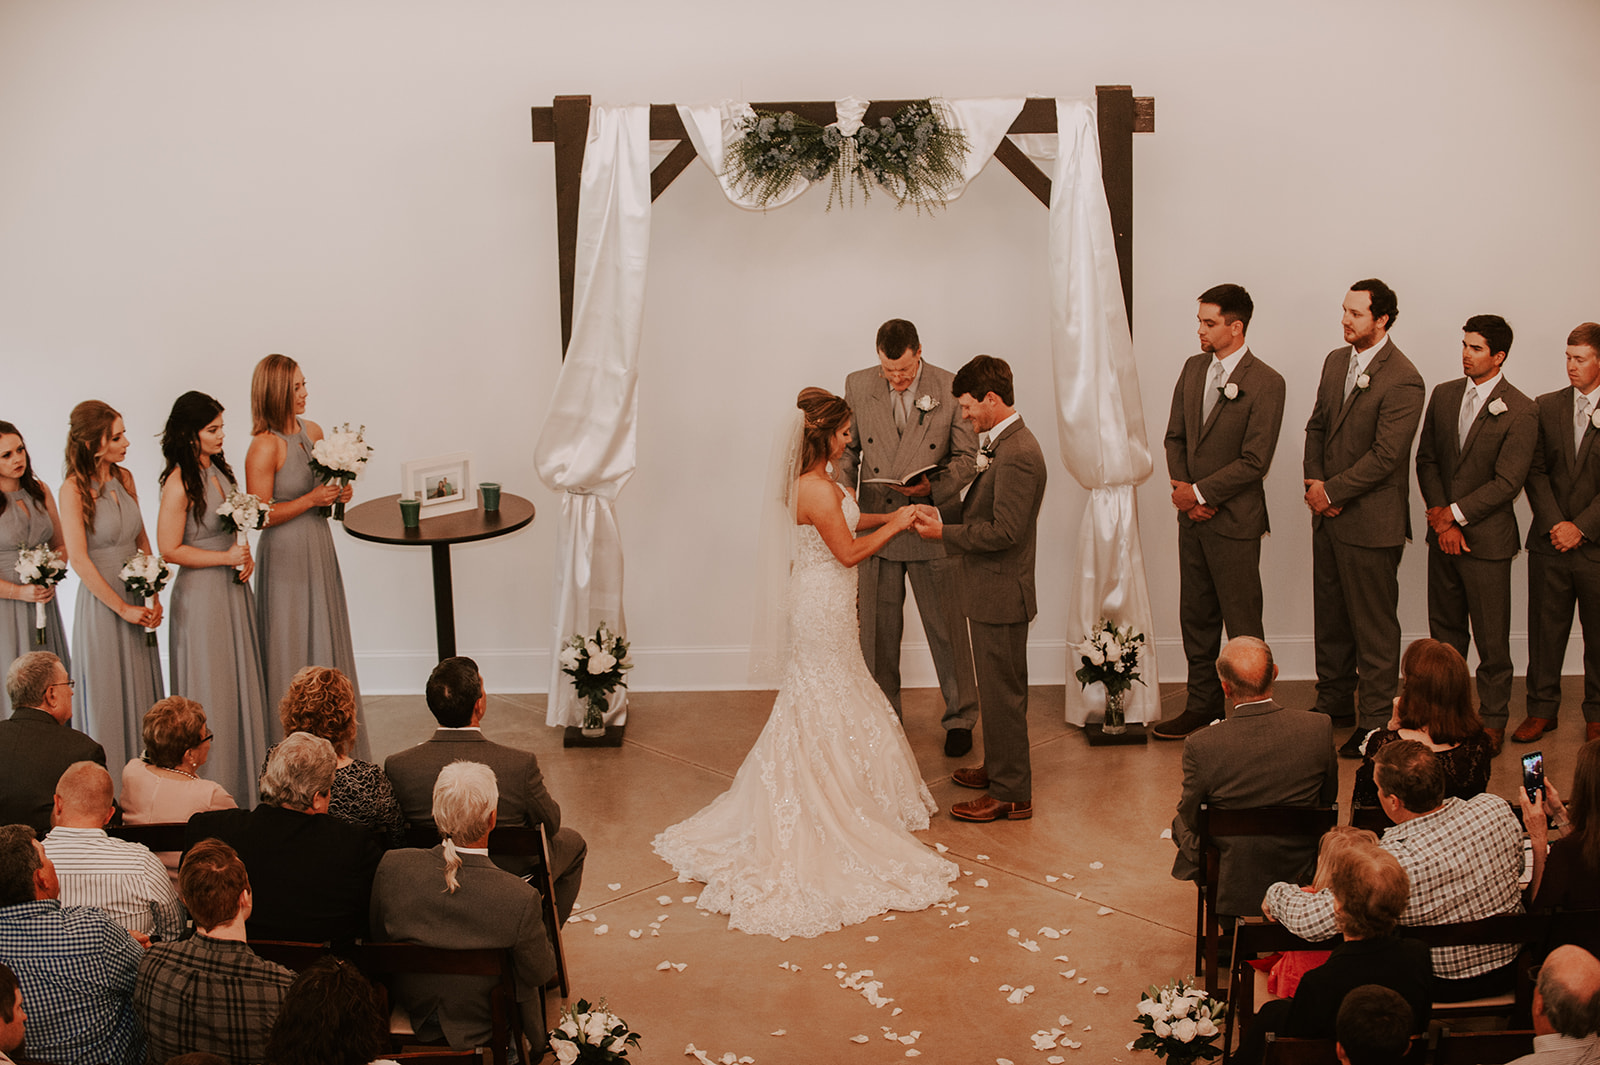 Lauren+MattCramerWedding-531_websize.jpg